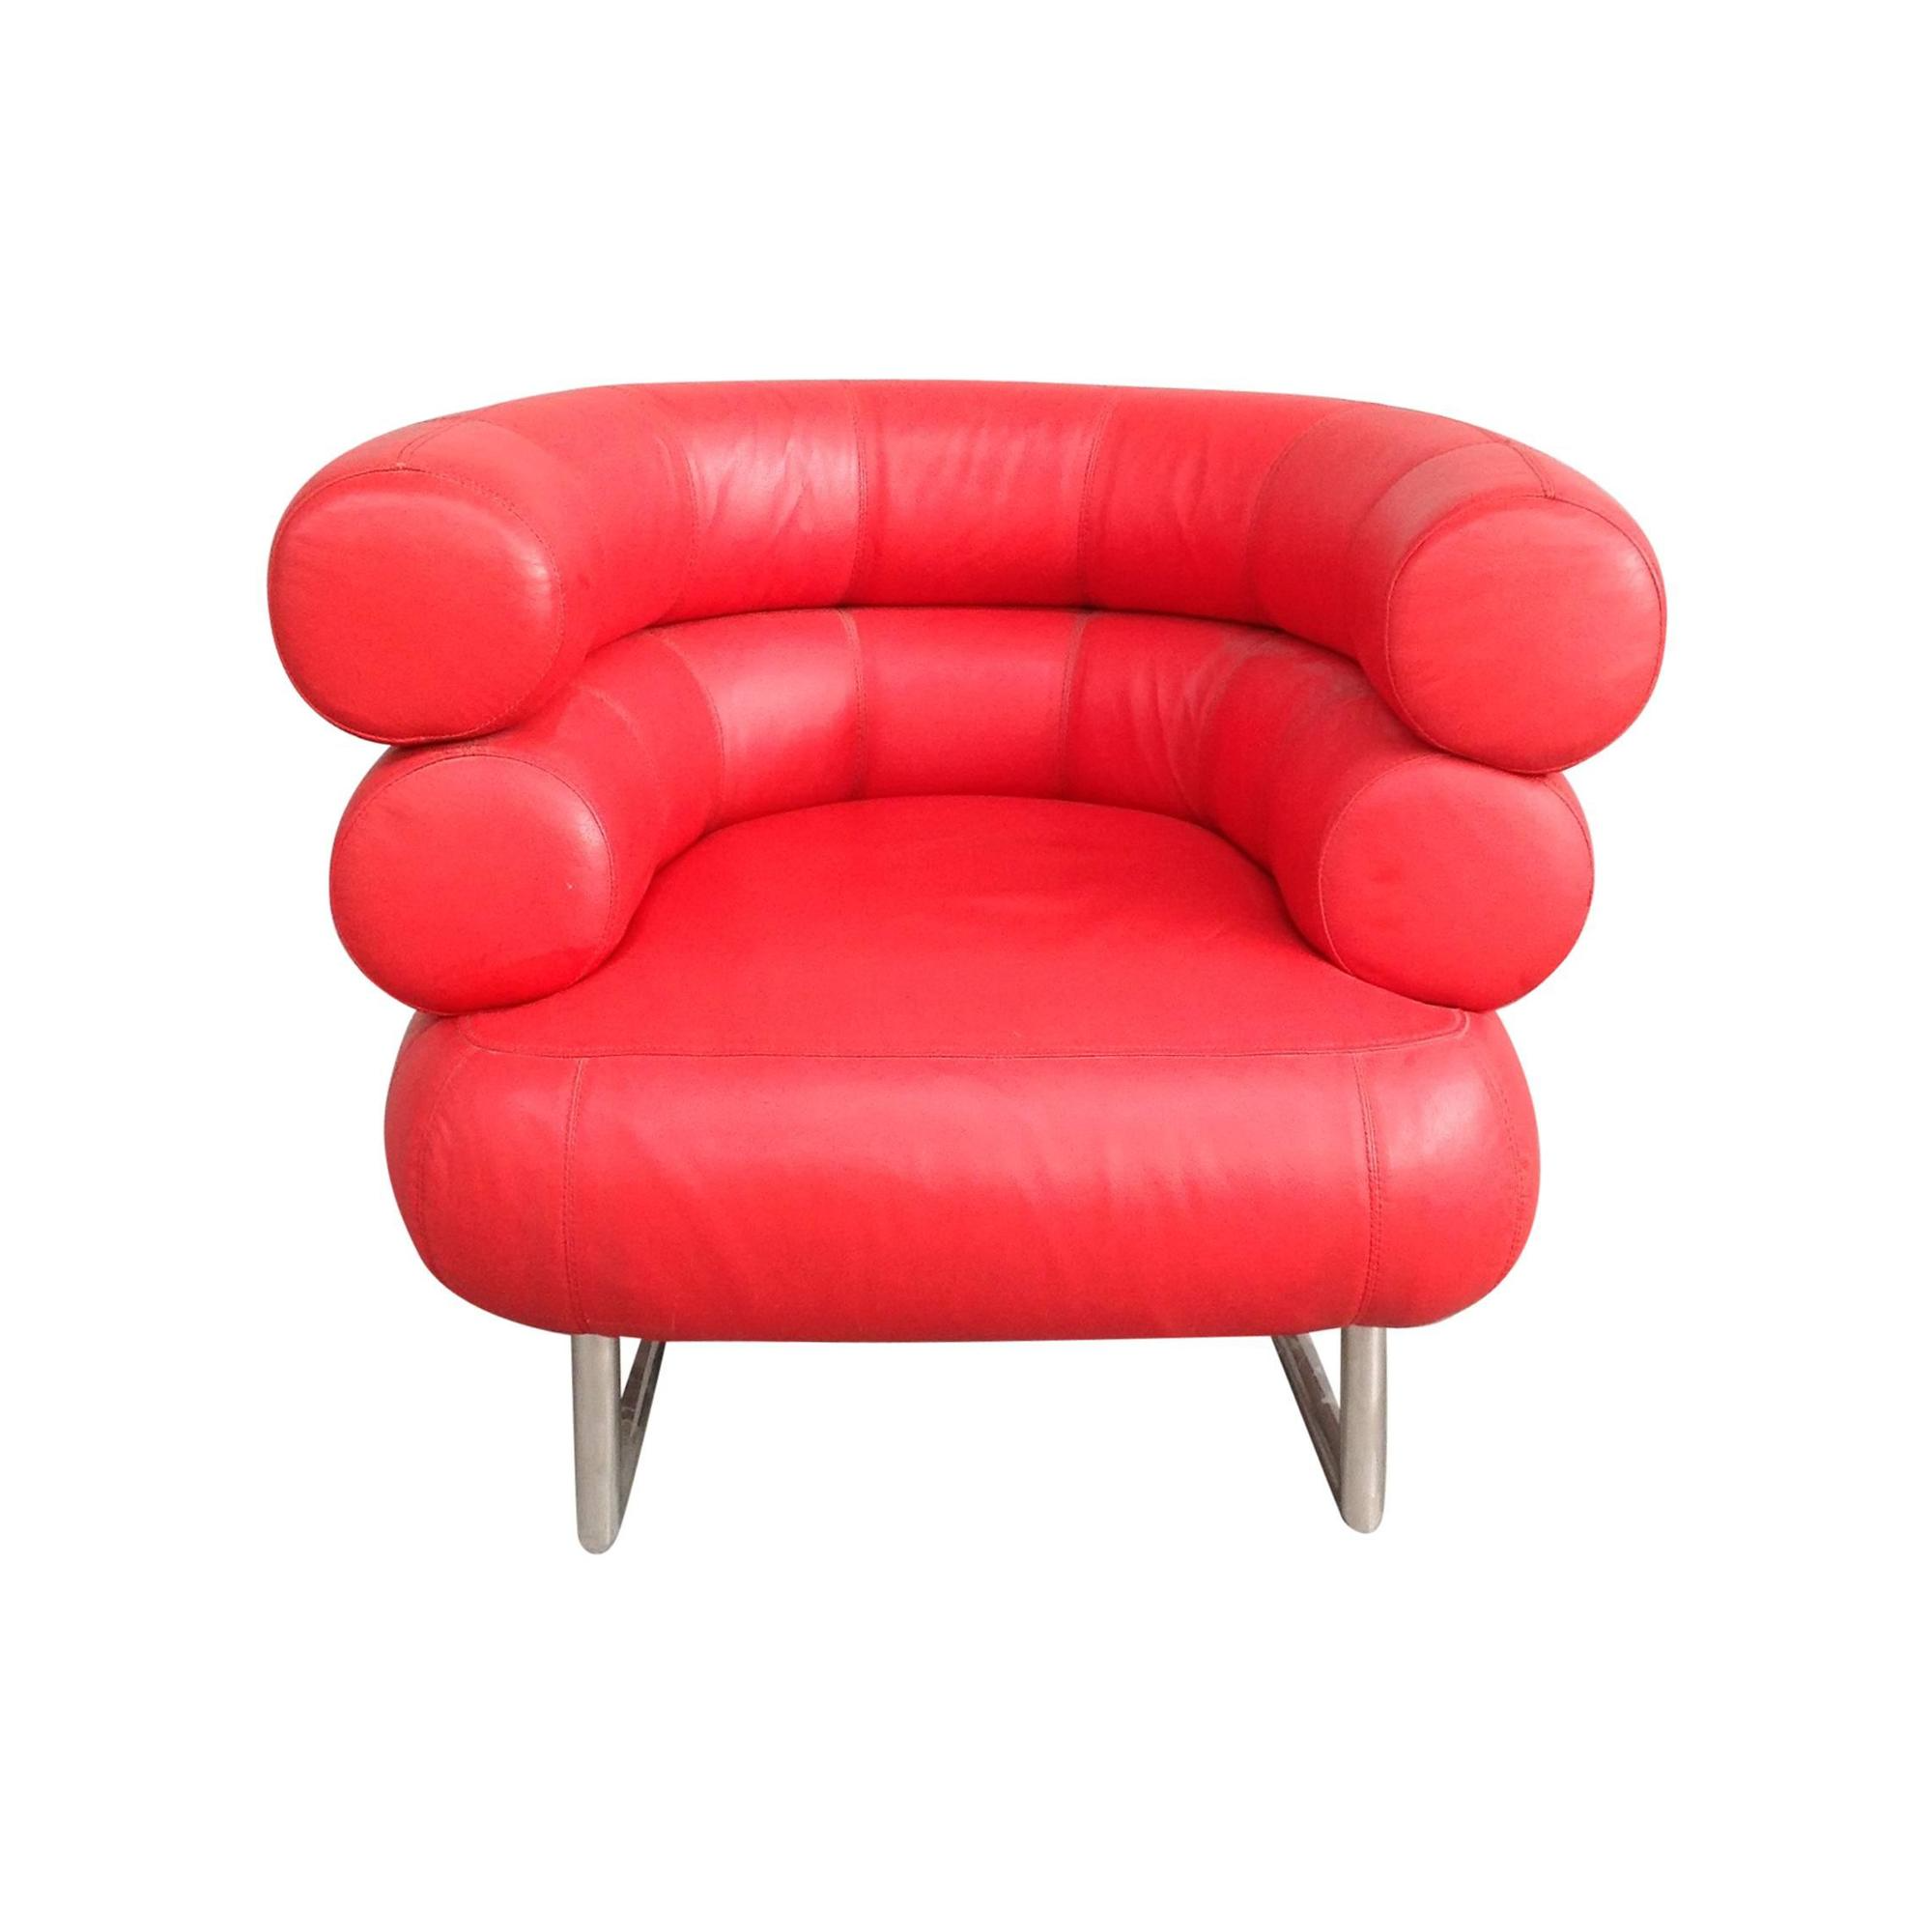 eileen gray furniture lighting chairs sofas more 21 for sale